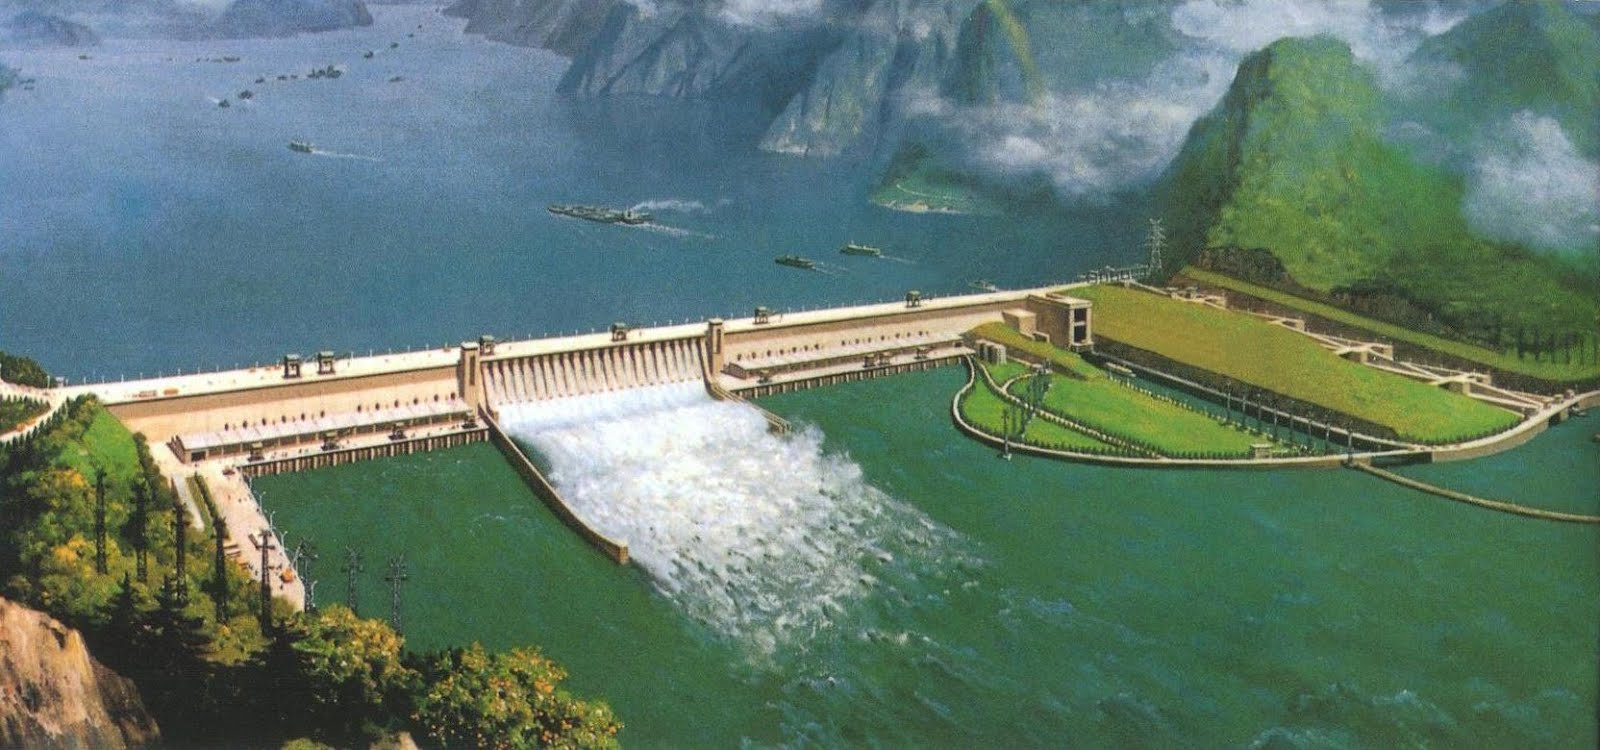 three gorges dam One can not talk about three gorges dam without mentioning the yangtze gorges the yangtze gorges lay in the upper reaches of yangtze river and form a common boundary for hubei province, shchuan province and chongqing city.